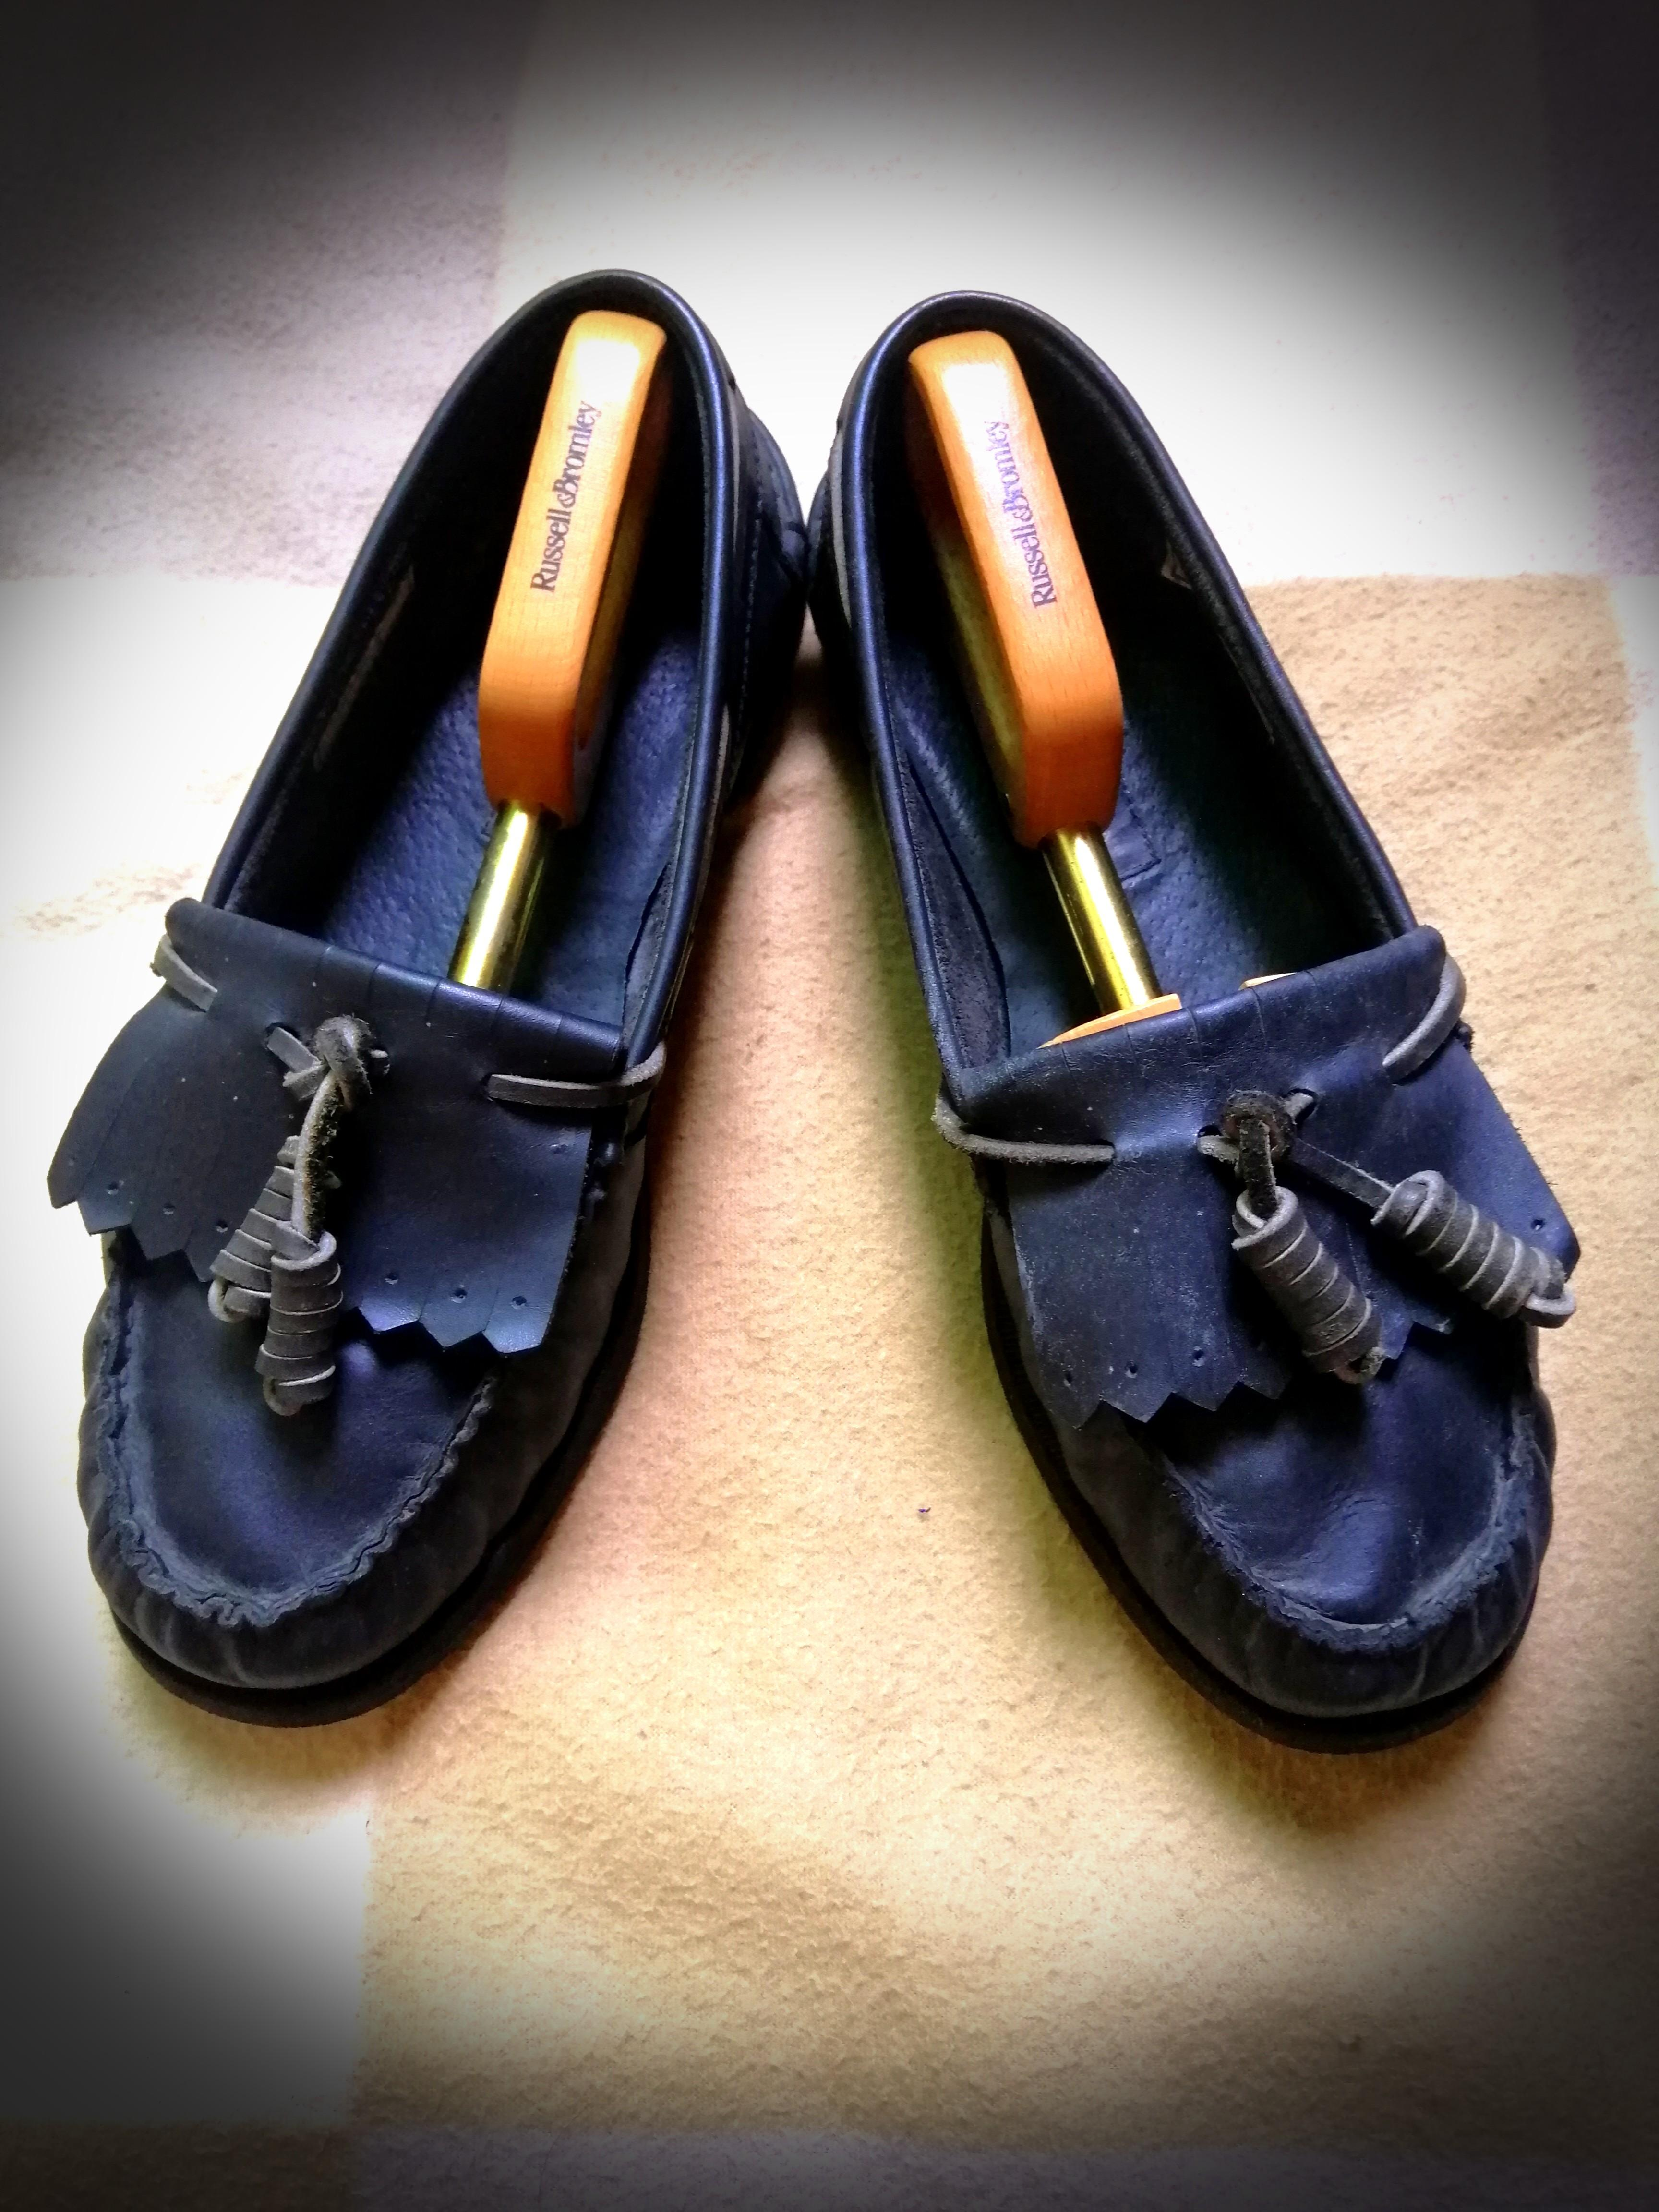 Russell Bromley Size 40.5// UK6.5 Mens Black Leather Slip On Tassle Loafers Shoes